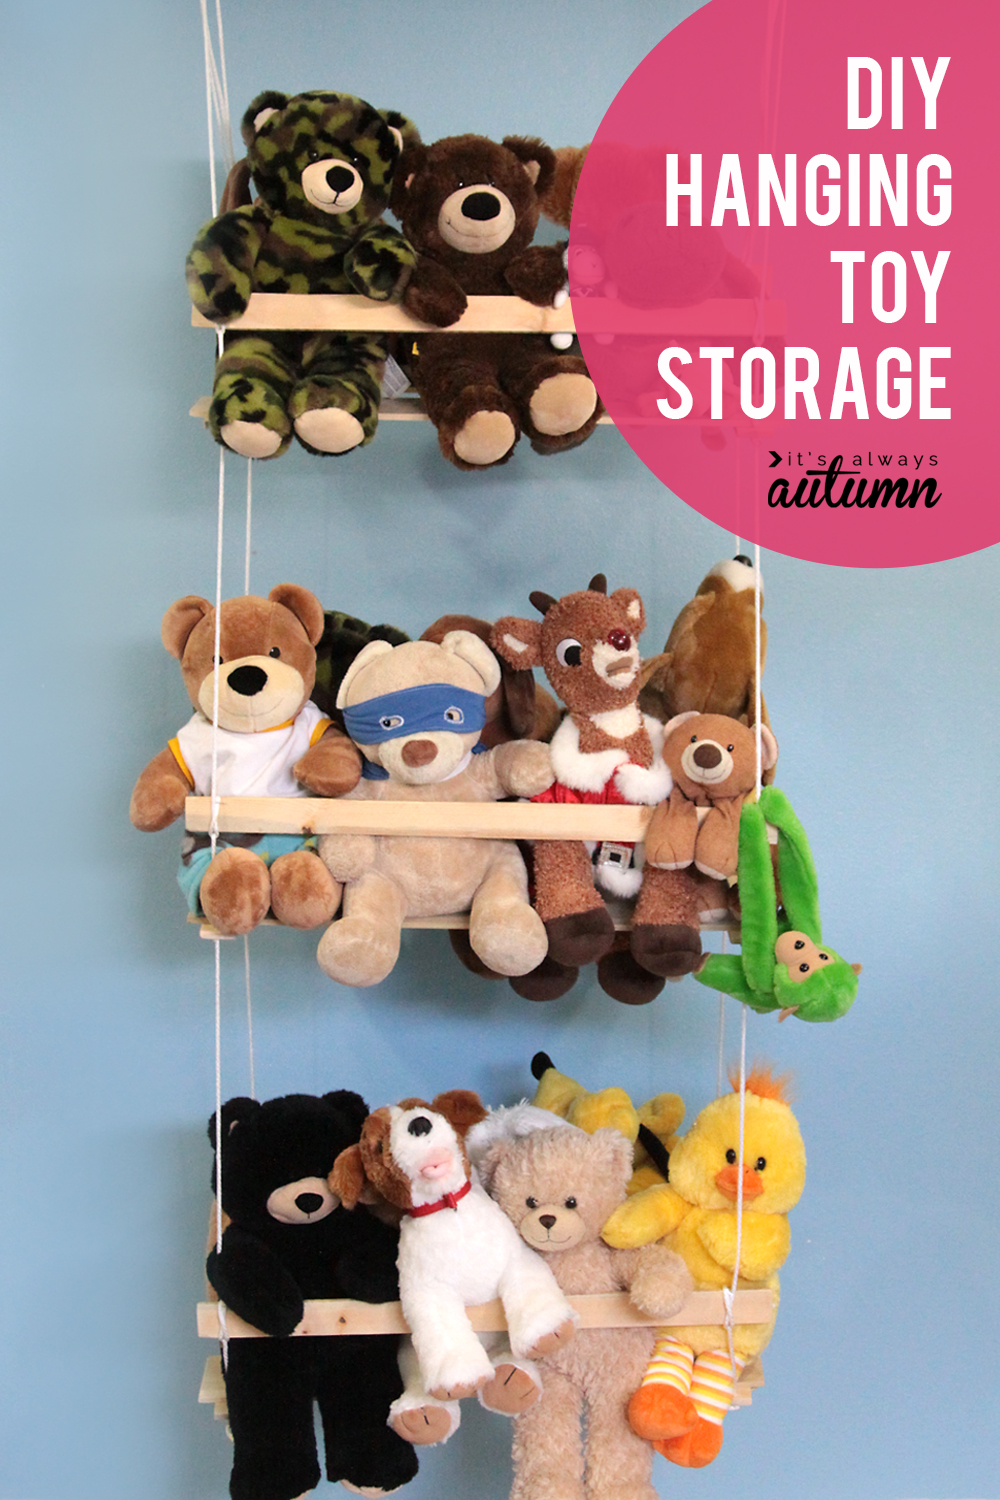 Organize your stuffed animals with this easy to build hanging toy storage swing!